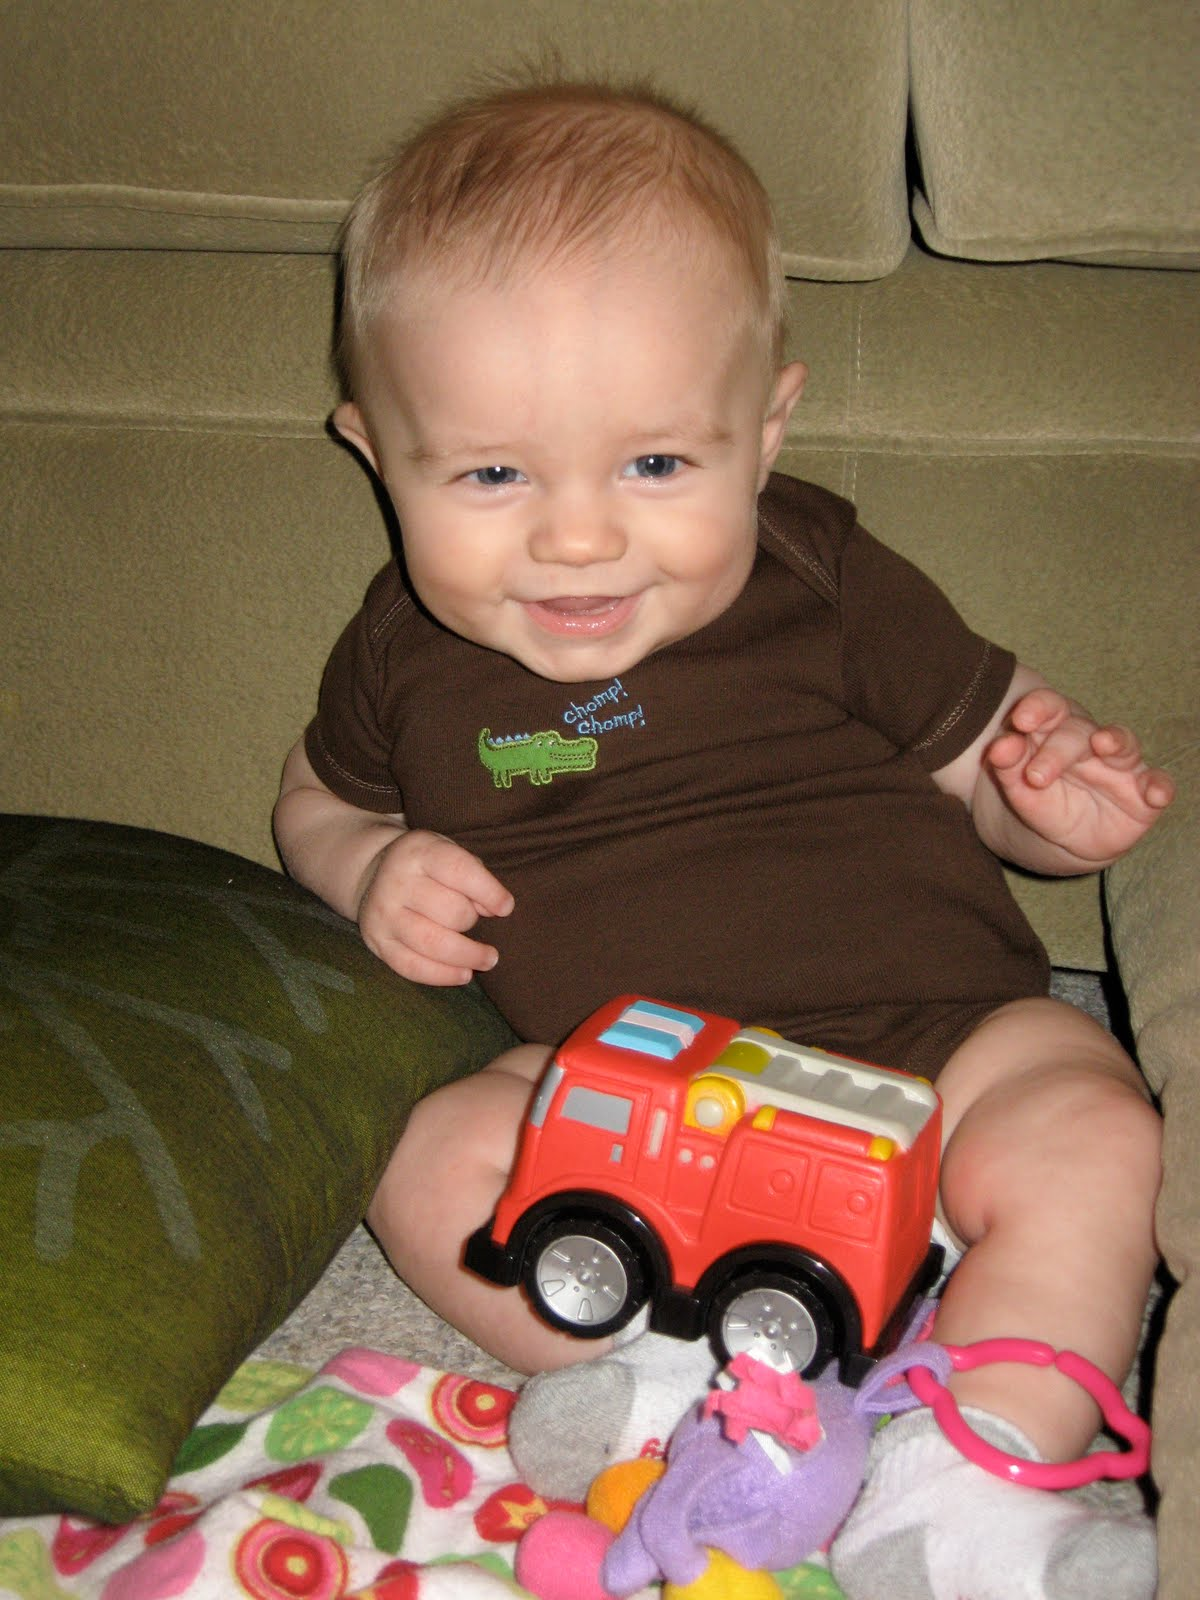 The greeley s happy 5 months baby boy